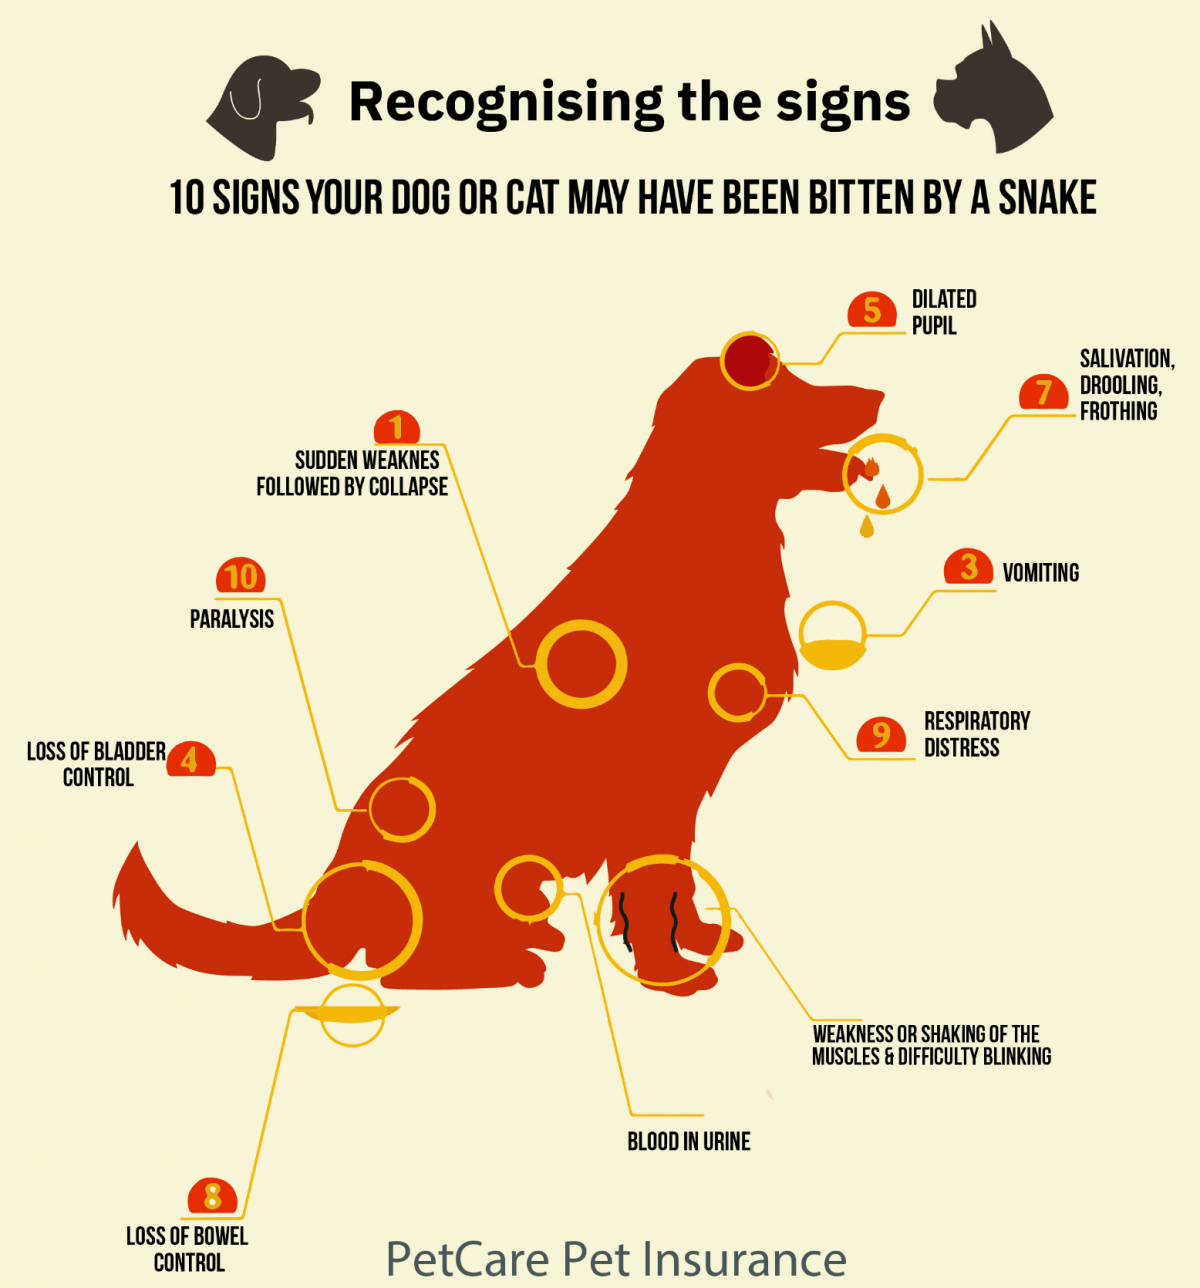 Recognising the snake bite signs dogs and cats